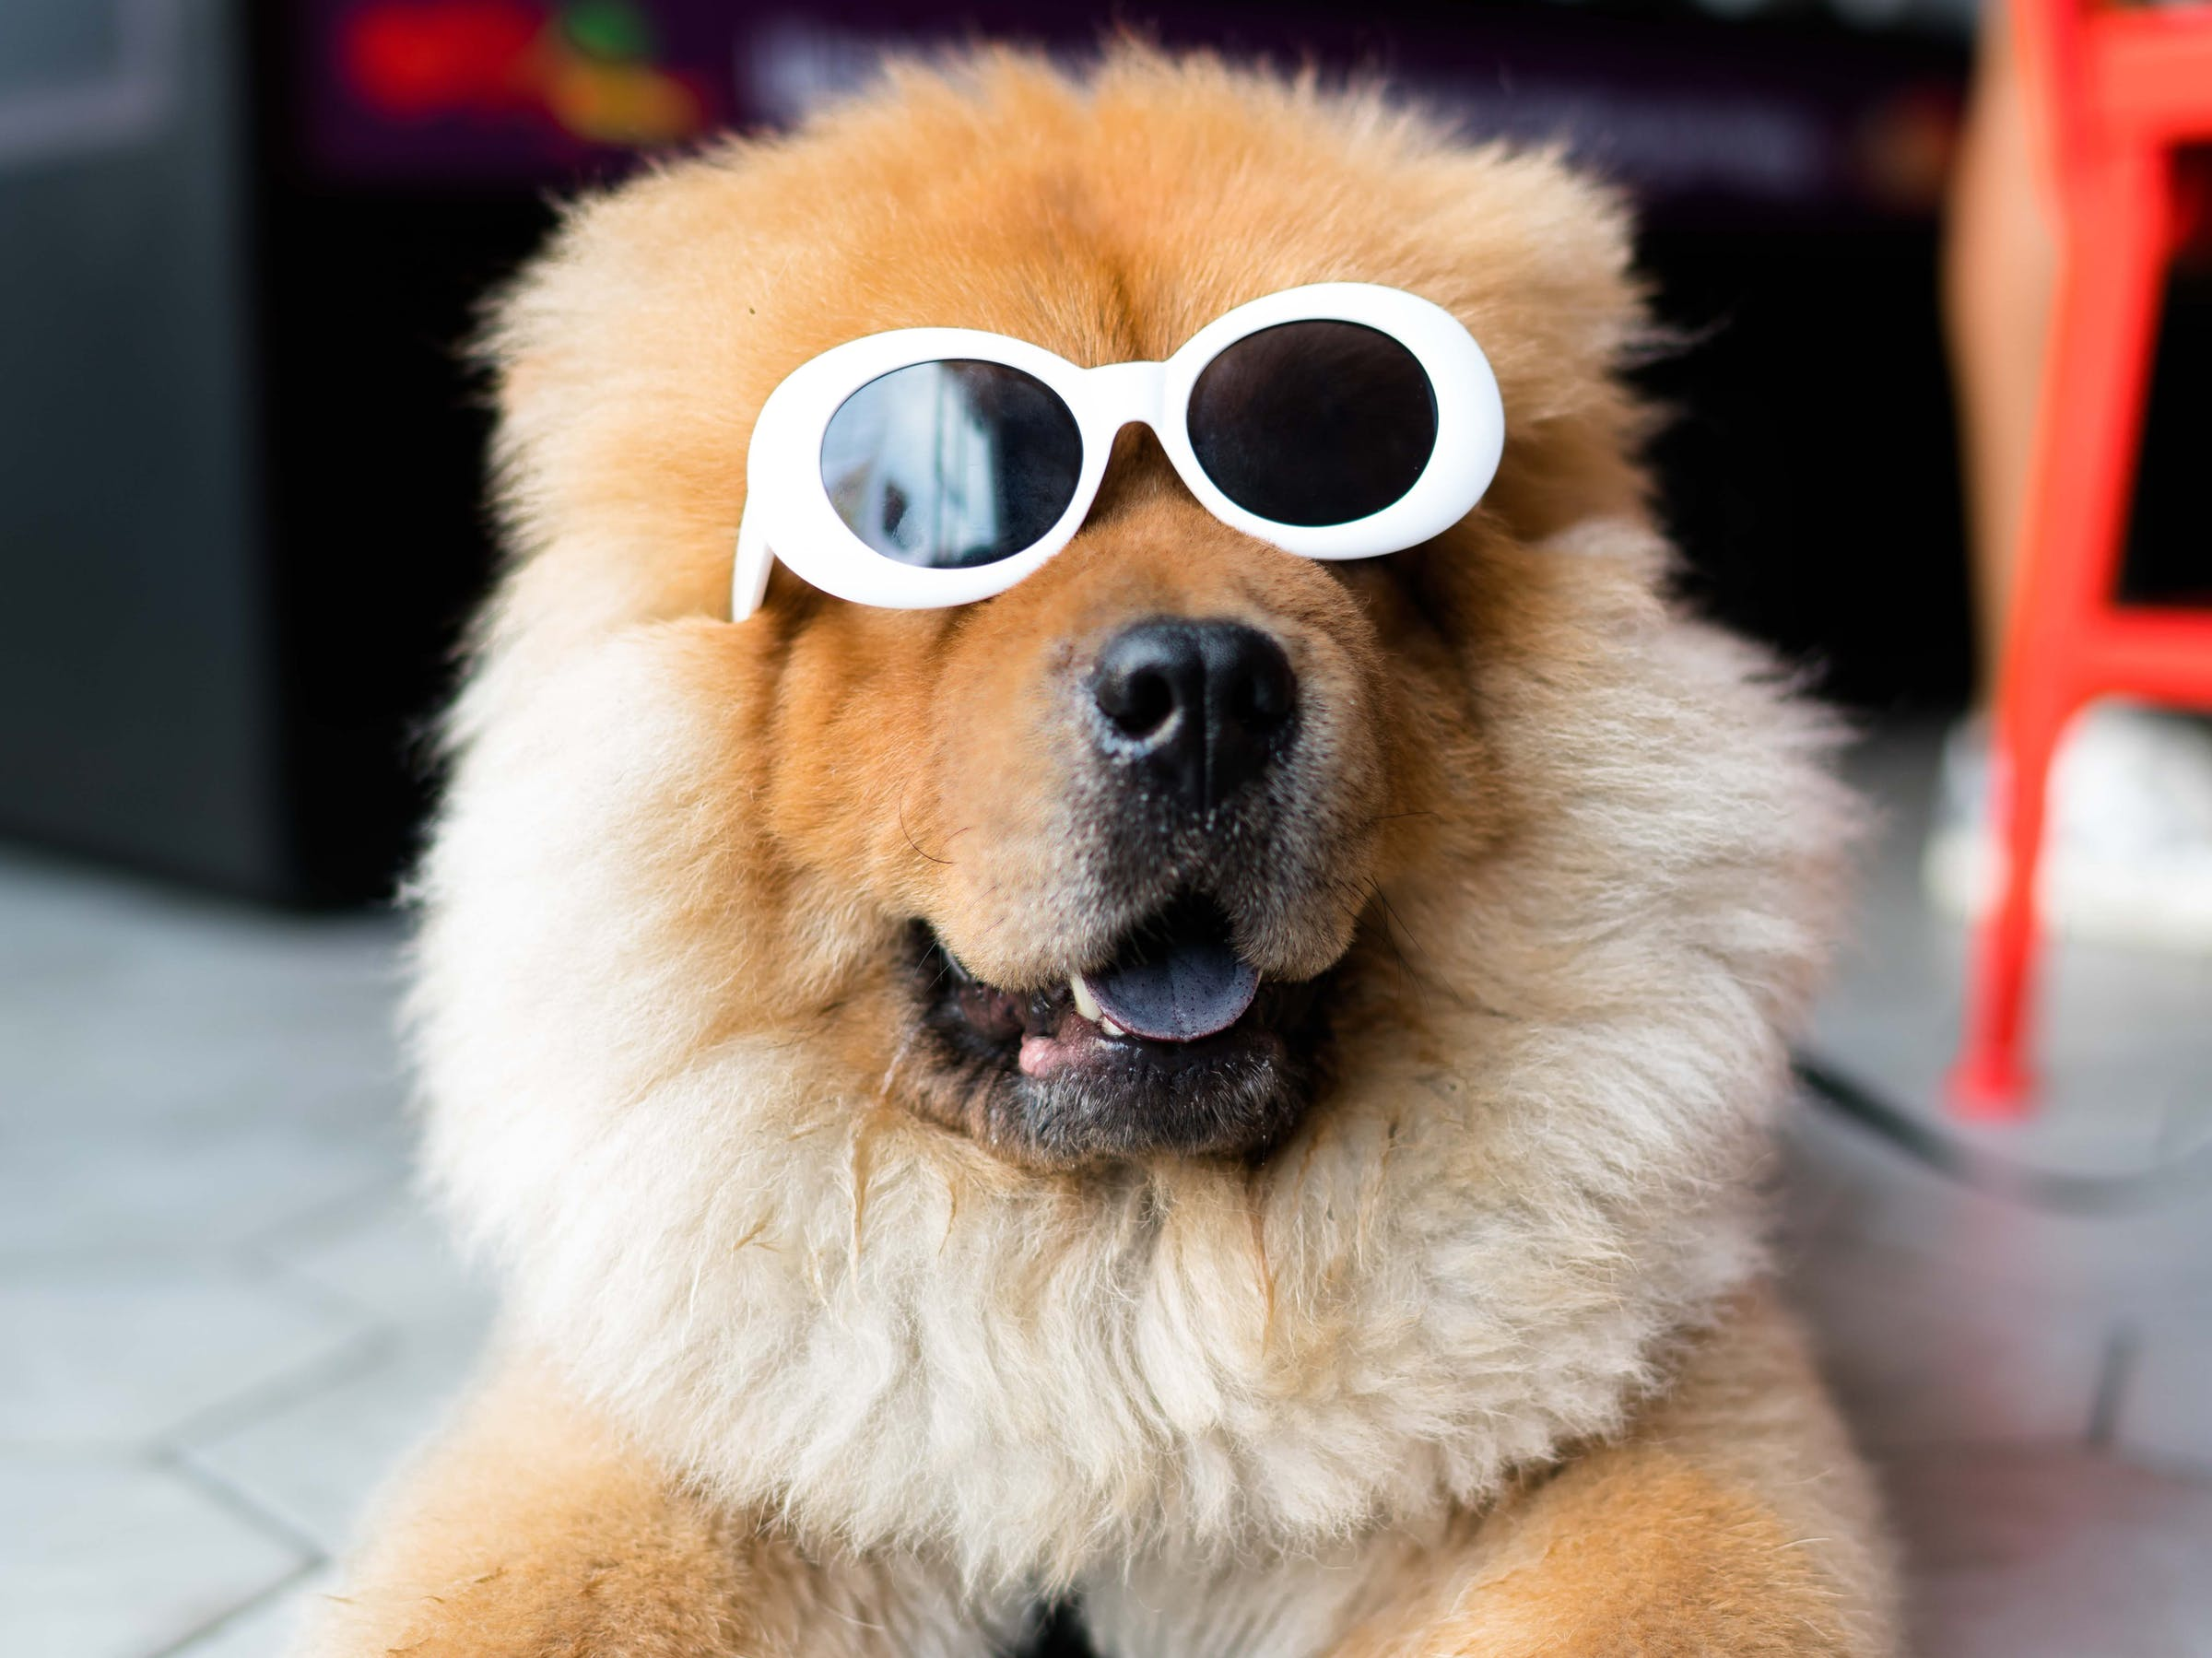 dog wearing sunglasses B)